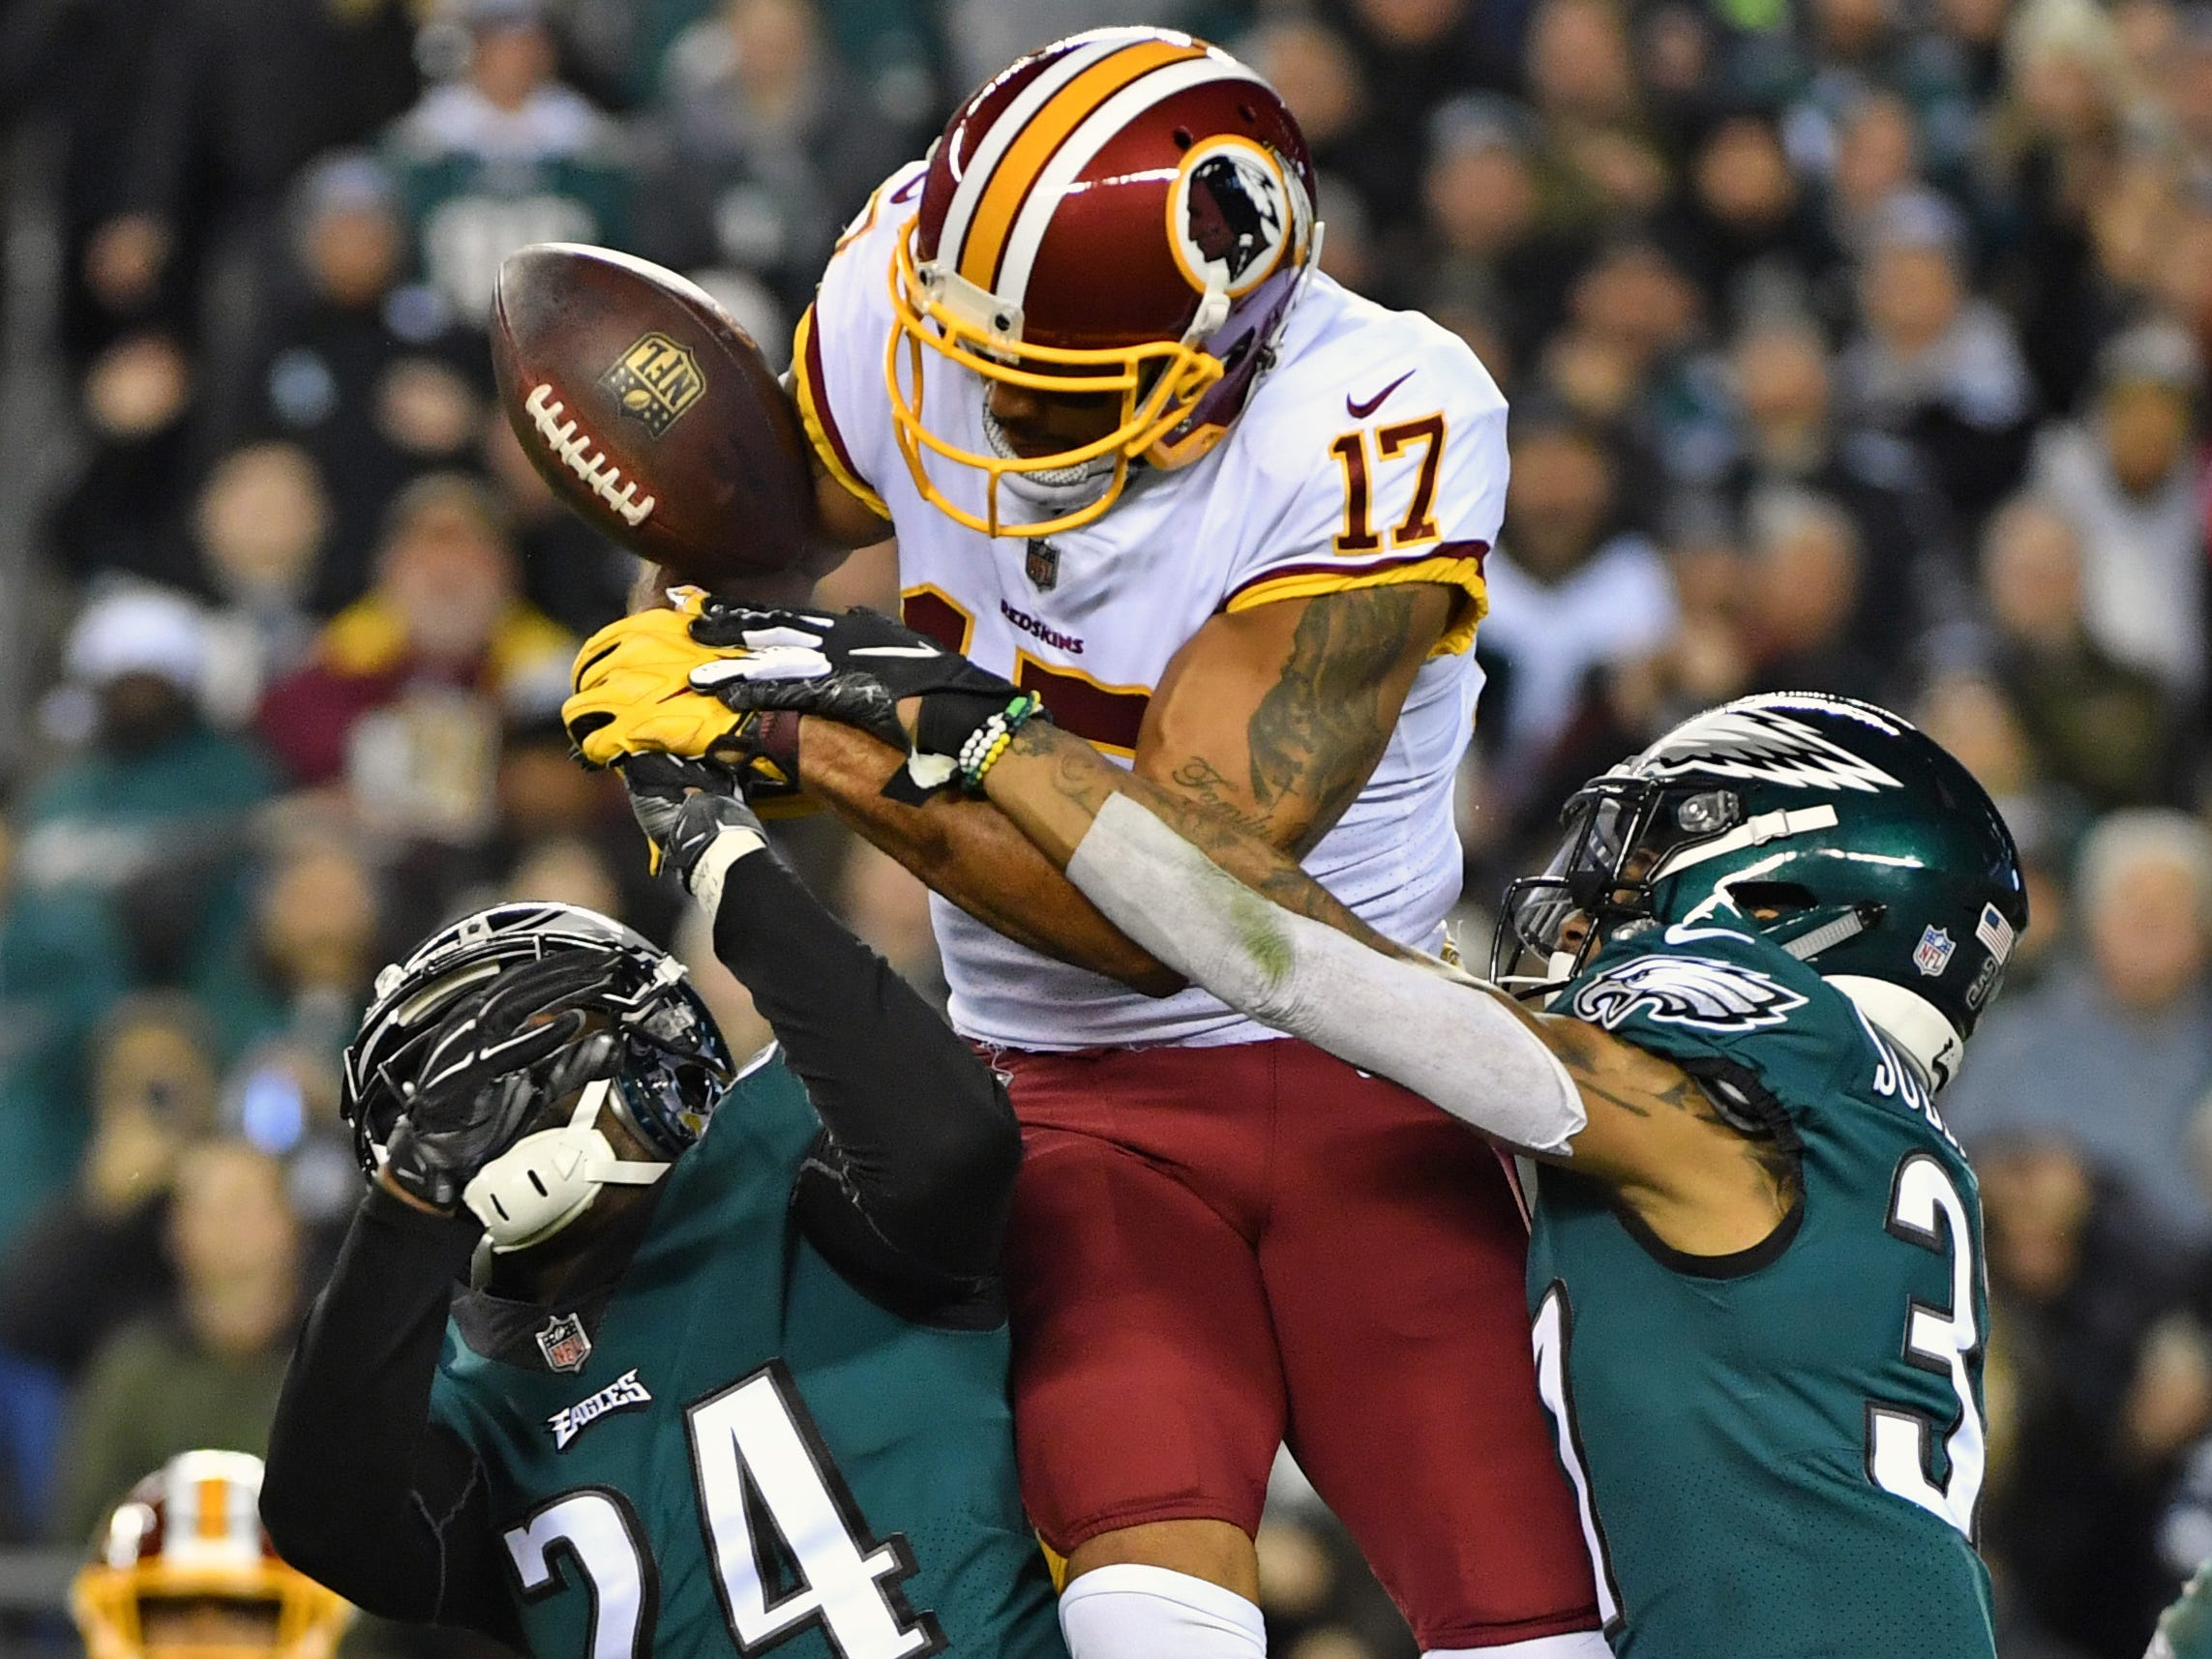 Philadelphia Eagles defensive back Tre Sullivan (37) and free safety Corey Graham (24) break up a pass intended for Washington Redskins wide receiver Michael Floyd (17) during the second quarter at Lincoln Financial Field.